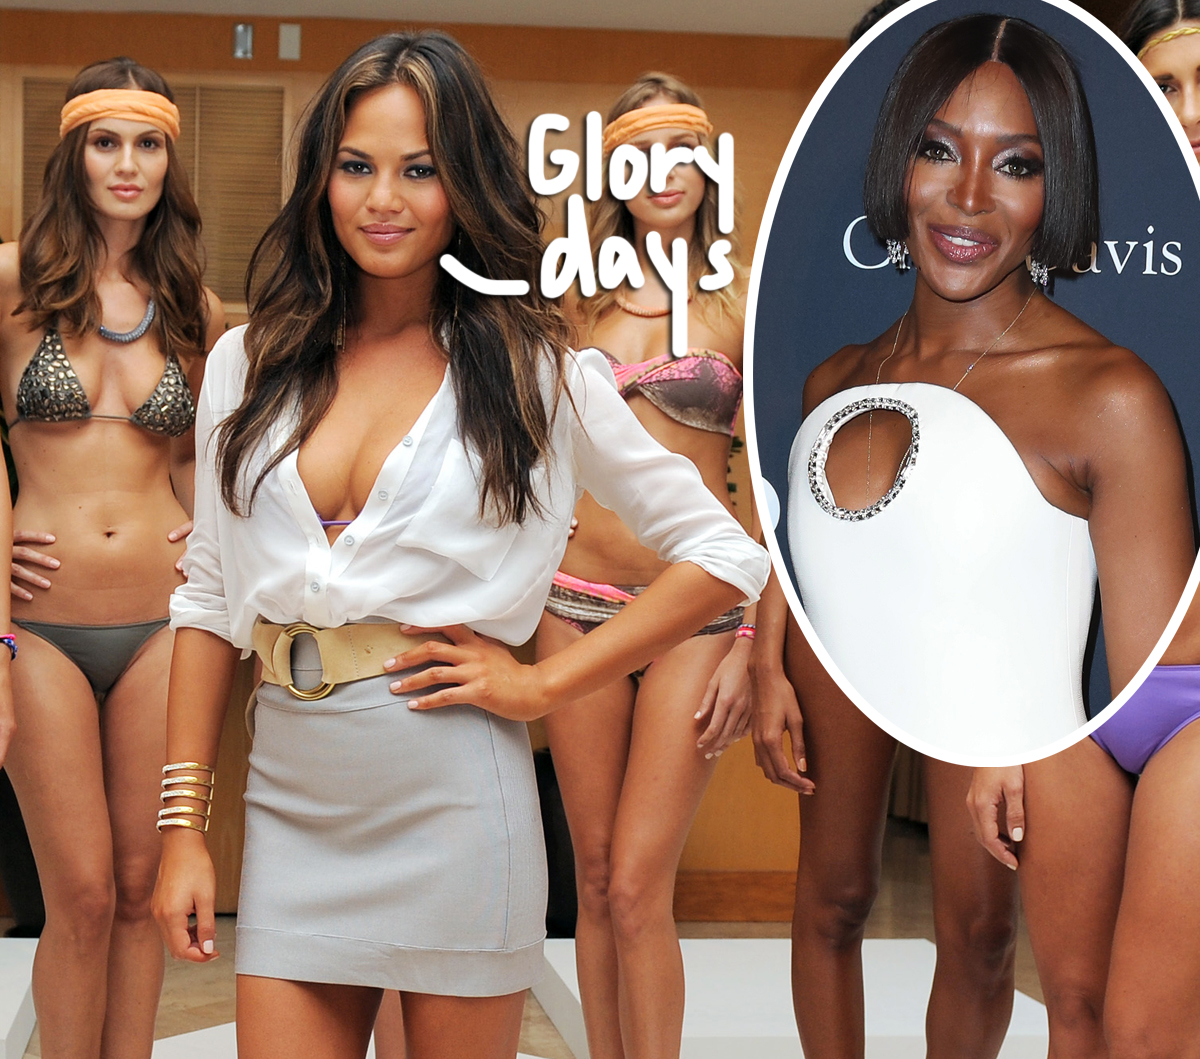 Chrissy Teigen Does NOT Look Back Fondly On Her Time As A 'C-Class Naomi Campbell' Bikini Model